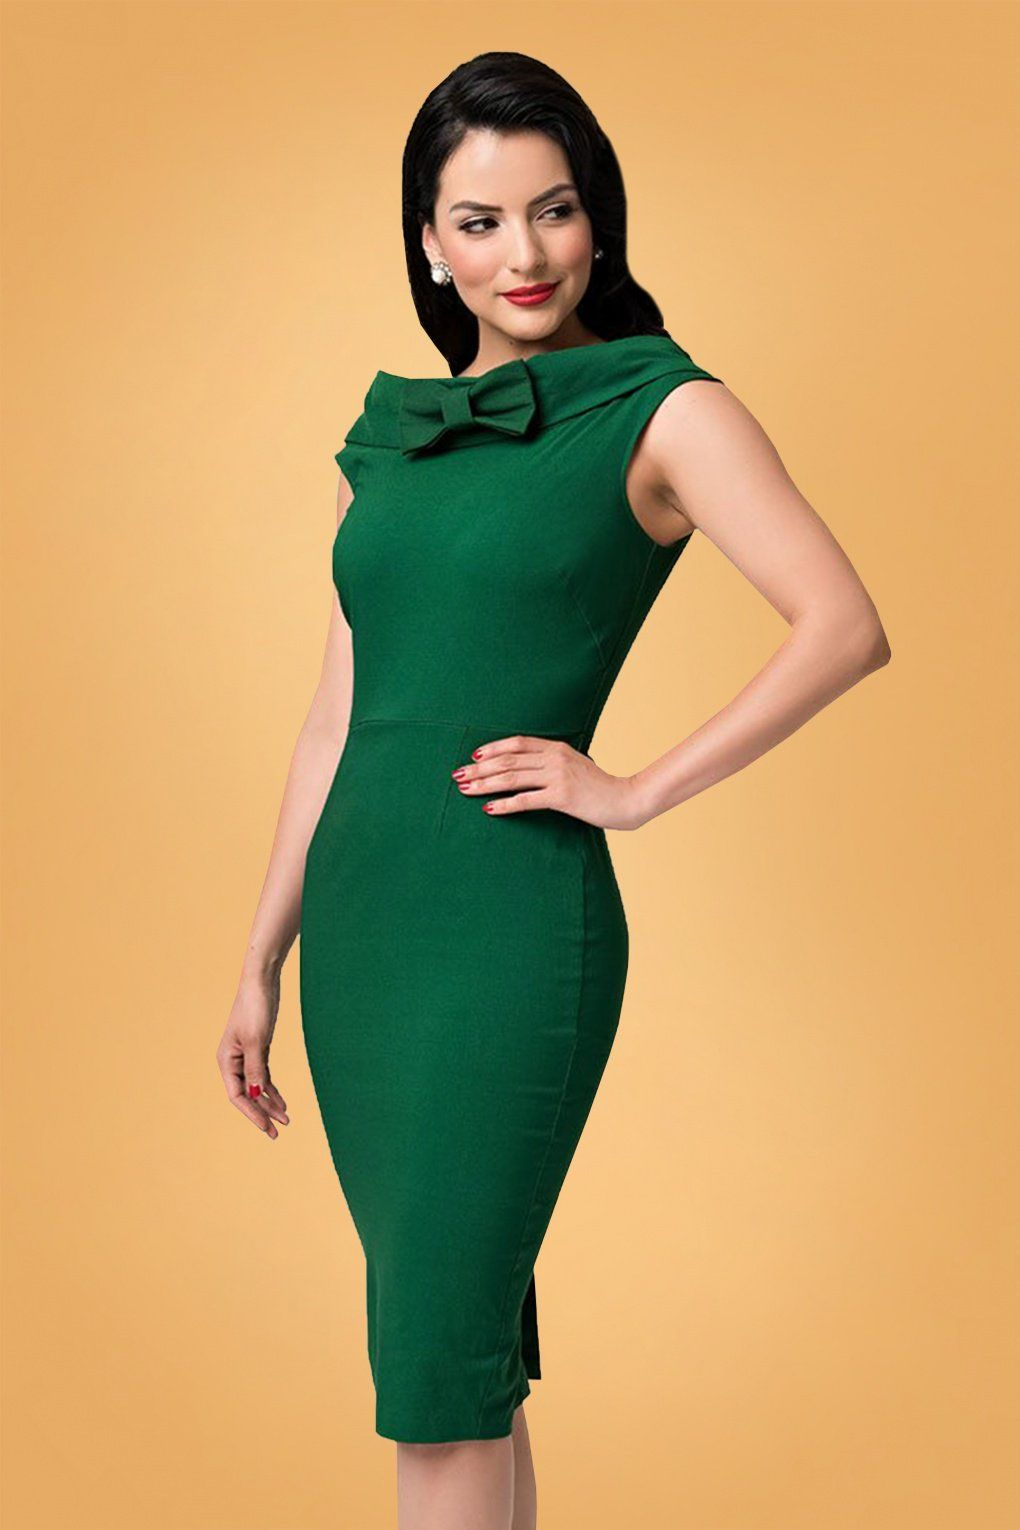 687061d46c7 A vintage dream come true... the Barbie x Unique Vintage collection! This  60s Barbie Sheath Dress in Emerald Green is a wardrobe essential!